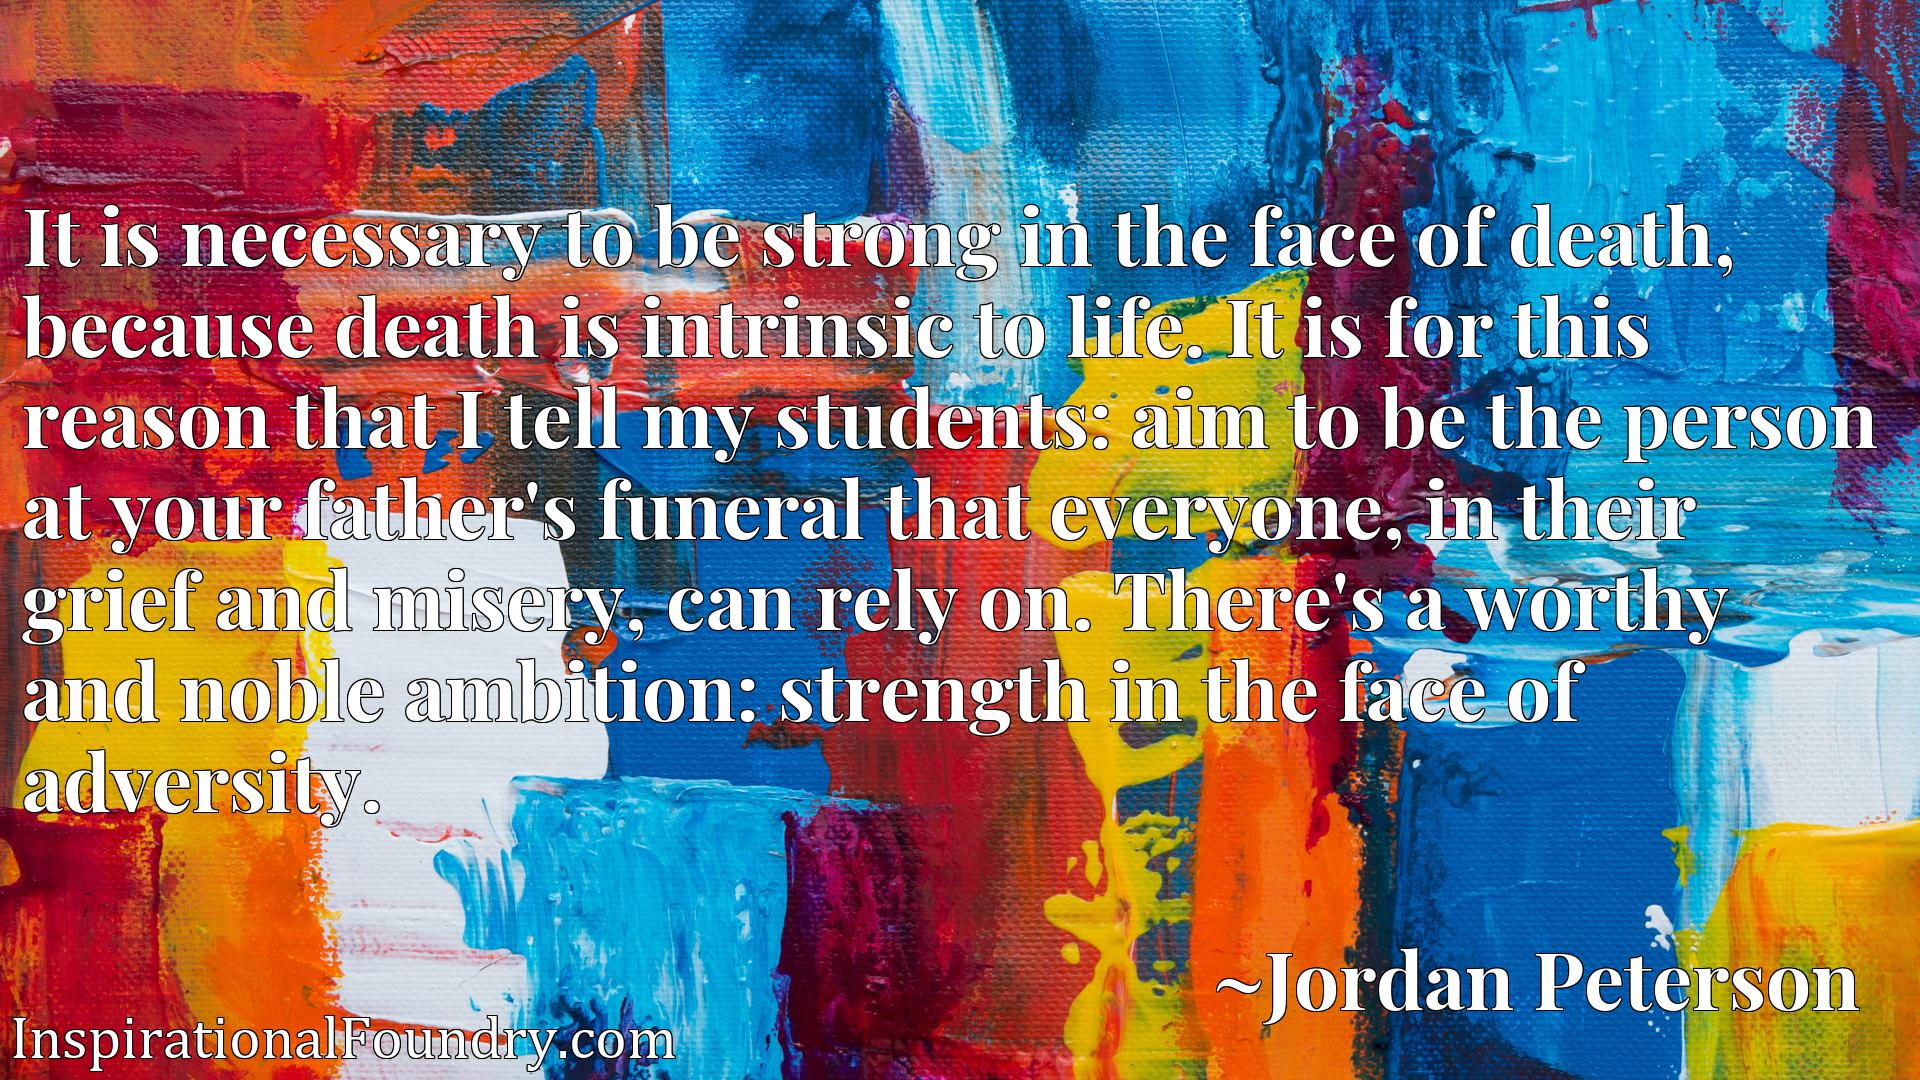 It is necessary to be strong in the face of death, because death is intrinsic to life. It is for this reason that I tell my students: aim to be the person at your father's funeral that everyone, in their grief and misery, can rely on. There's a worthy and noble ambition: strength in the face of adversity.